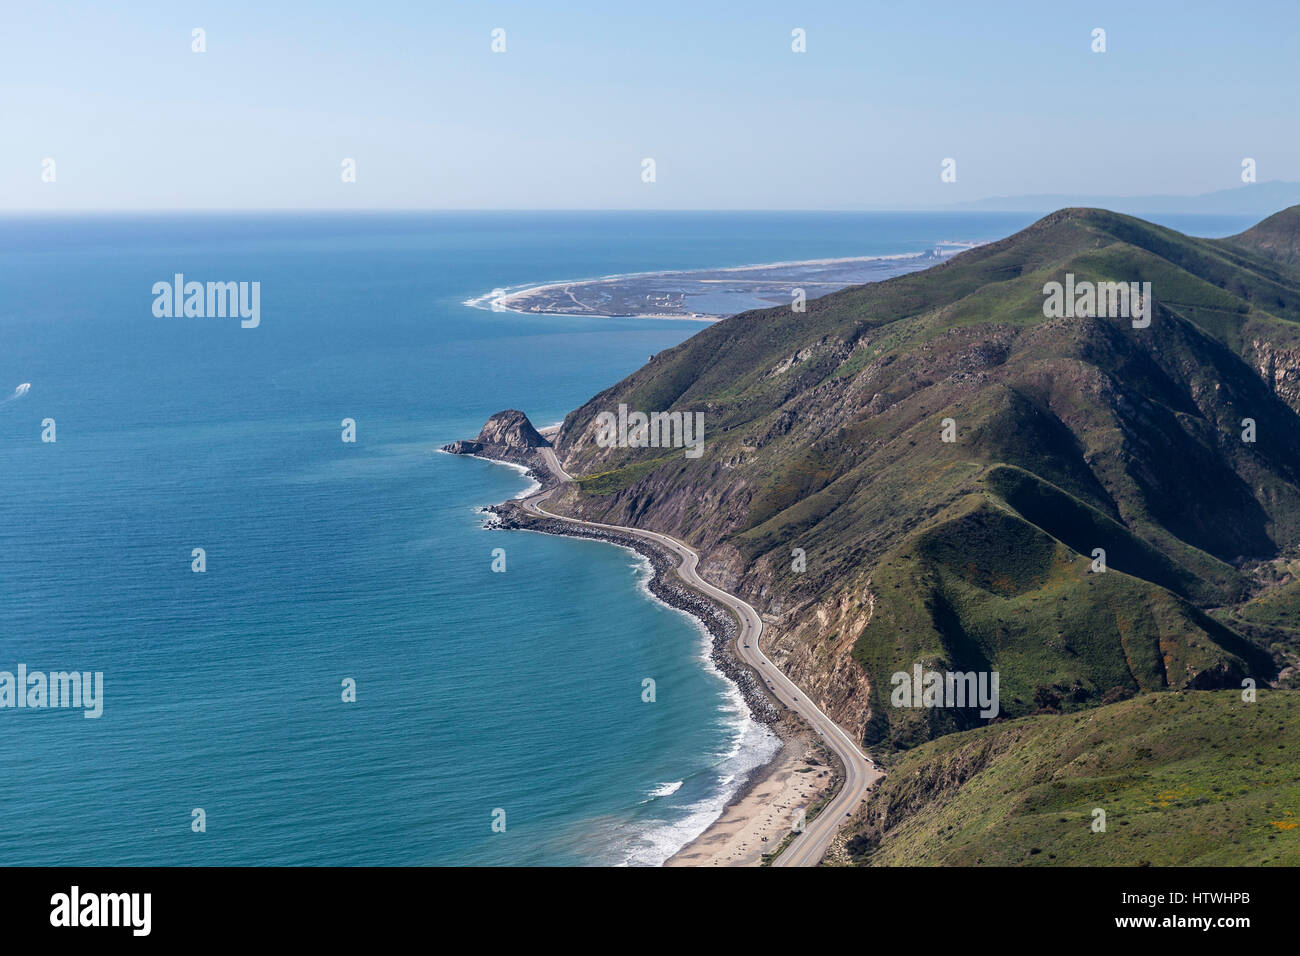 Aerial view of Pacific Coast Highway at Point Mugu between Malibu and Oxnard California. - Stock Image